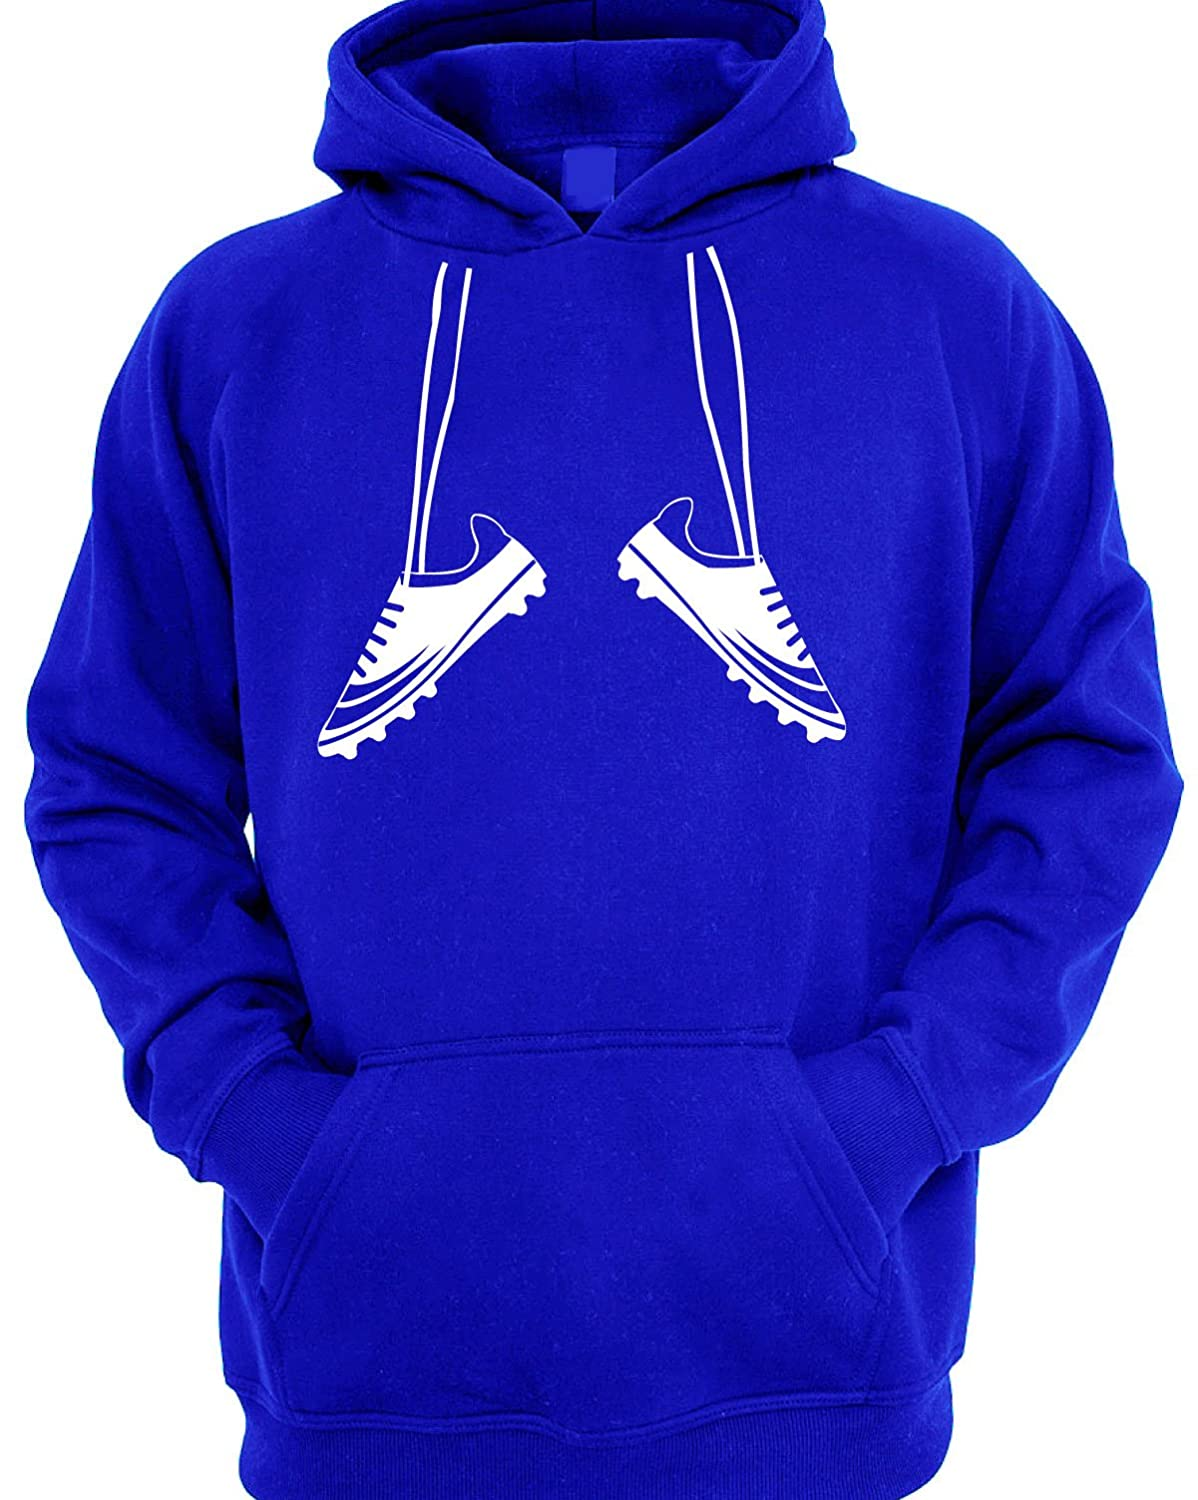 Football Boots Boy's Children's Football Hoodie